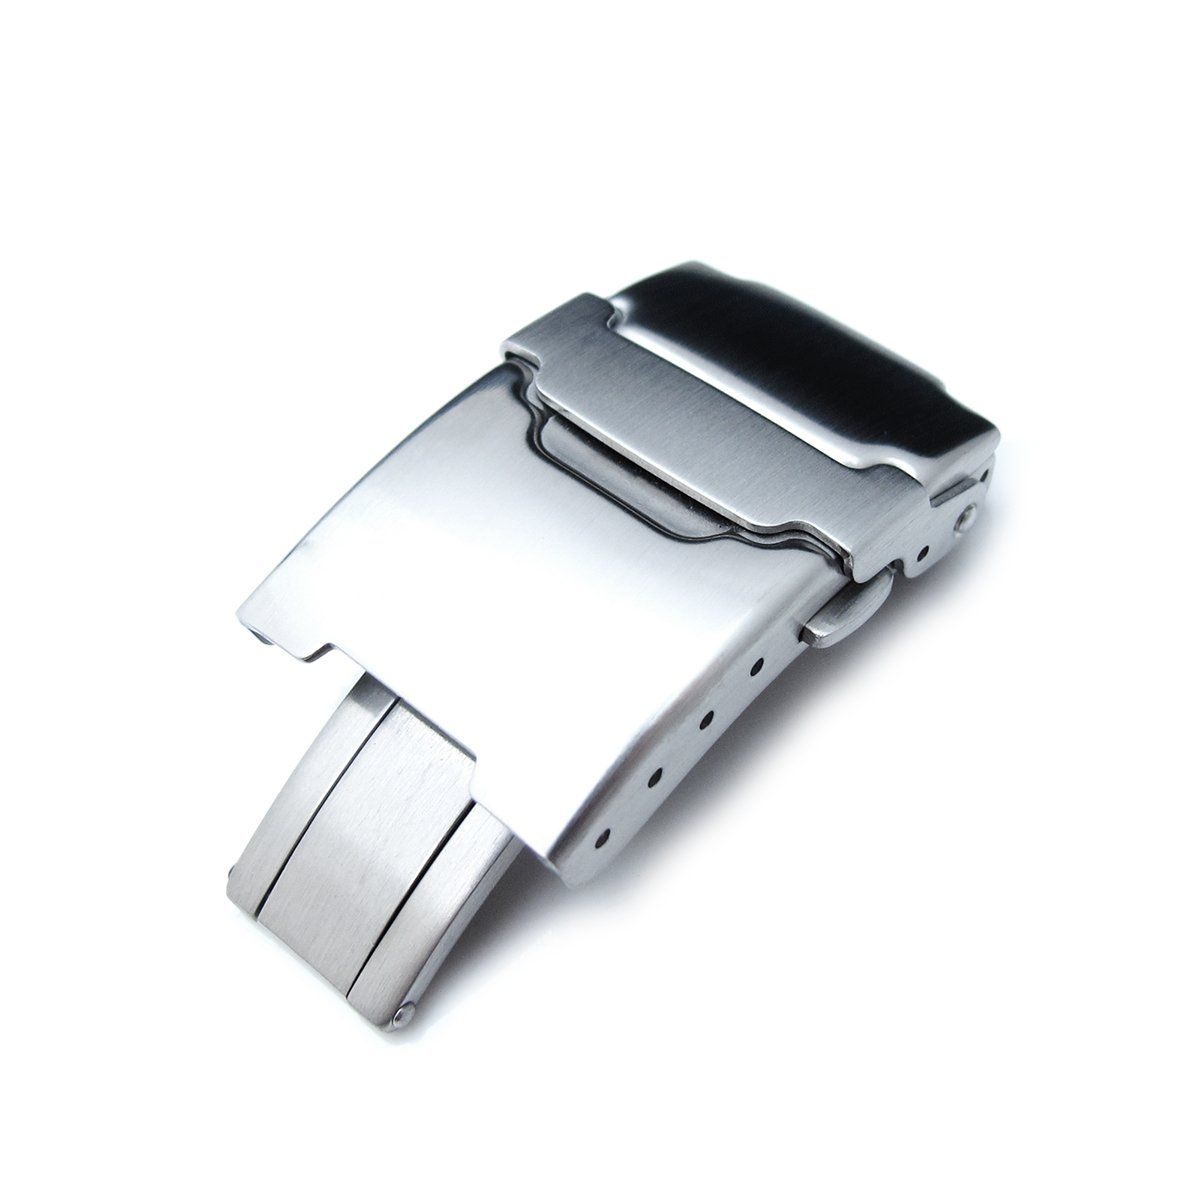 20mm brushed stainless steel push button diver clasp for